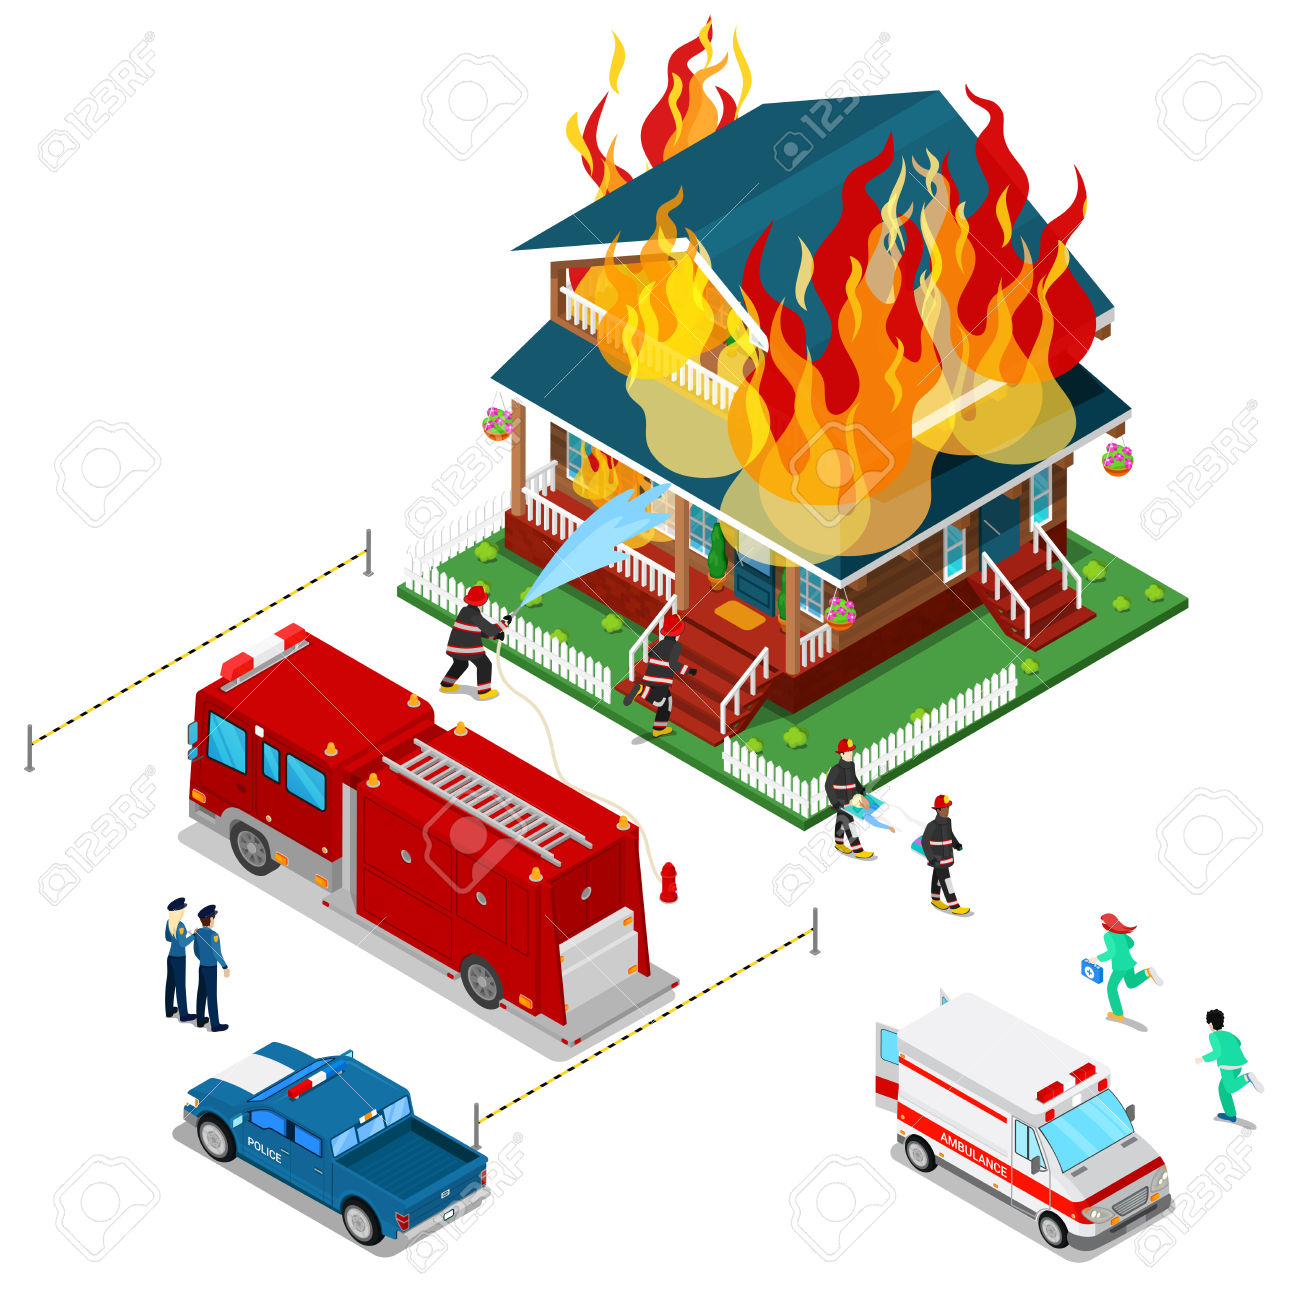 Fireman clipart home fire. House free download best